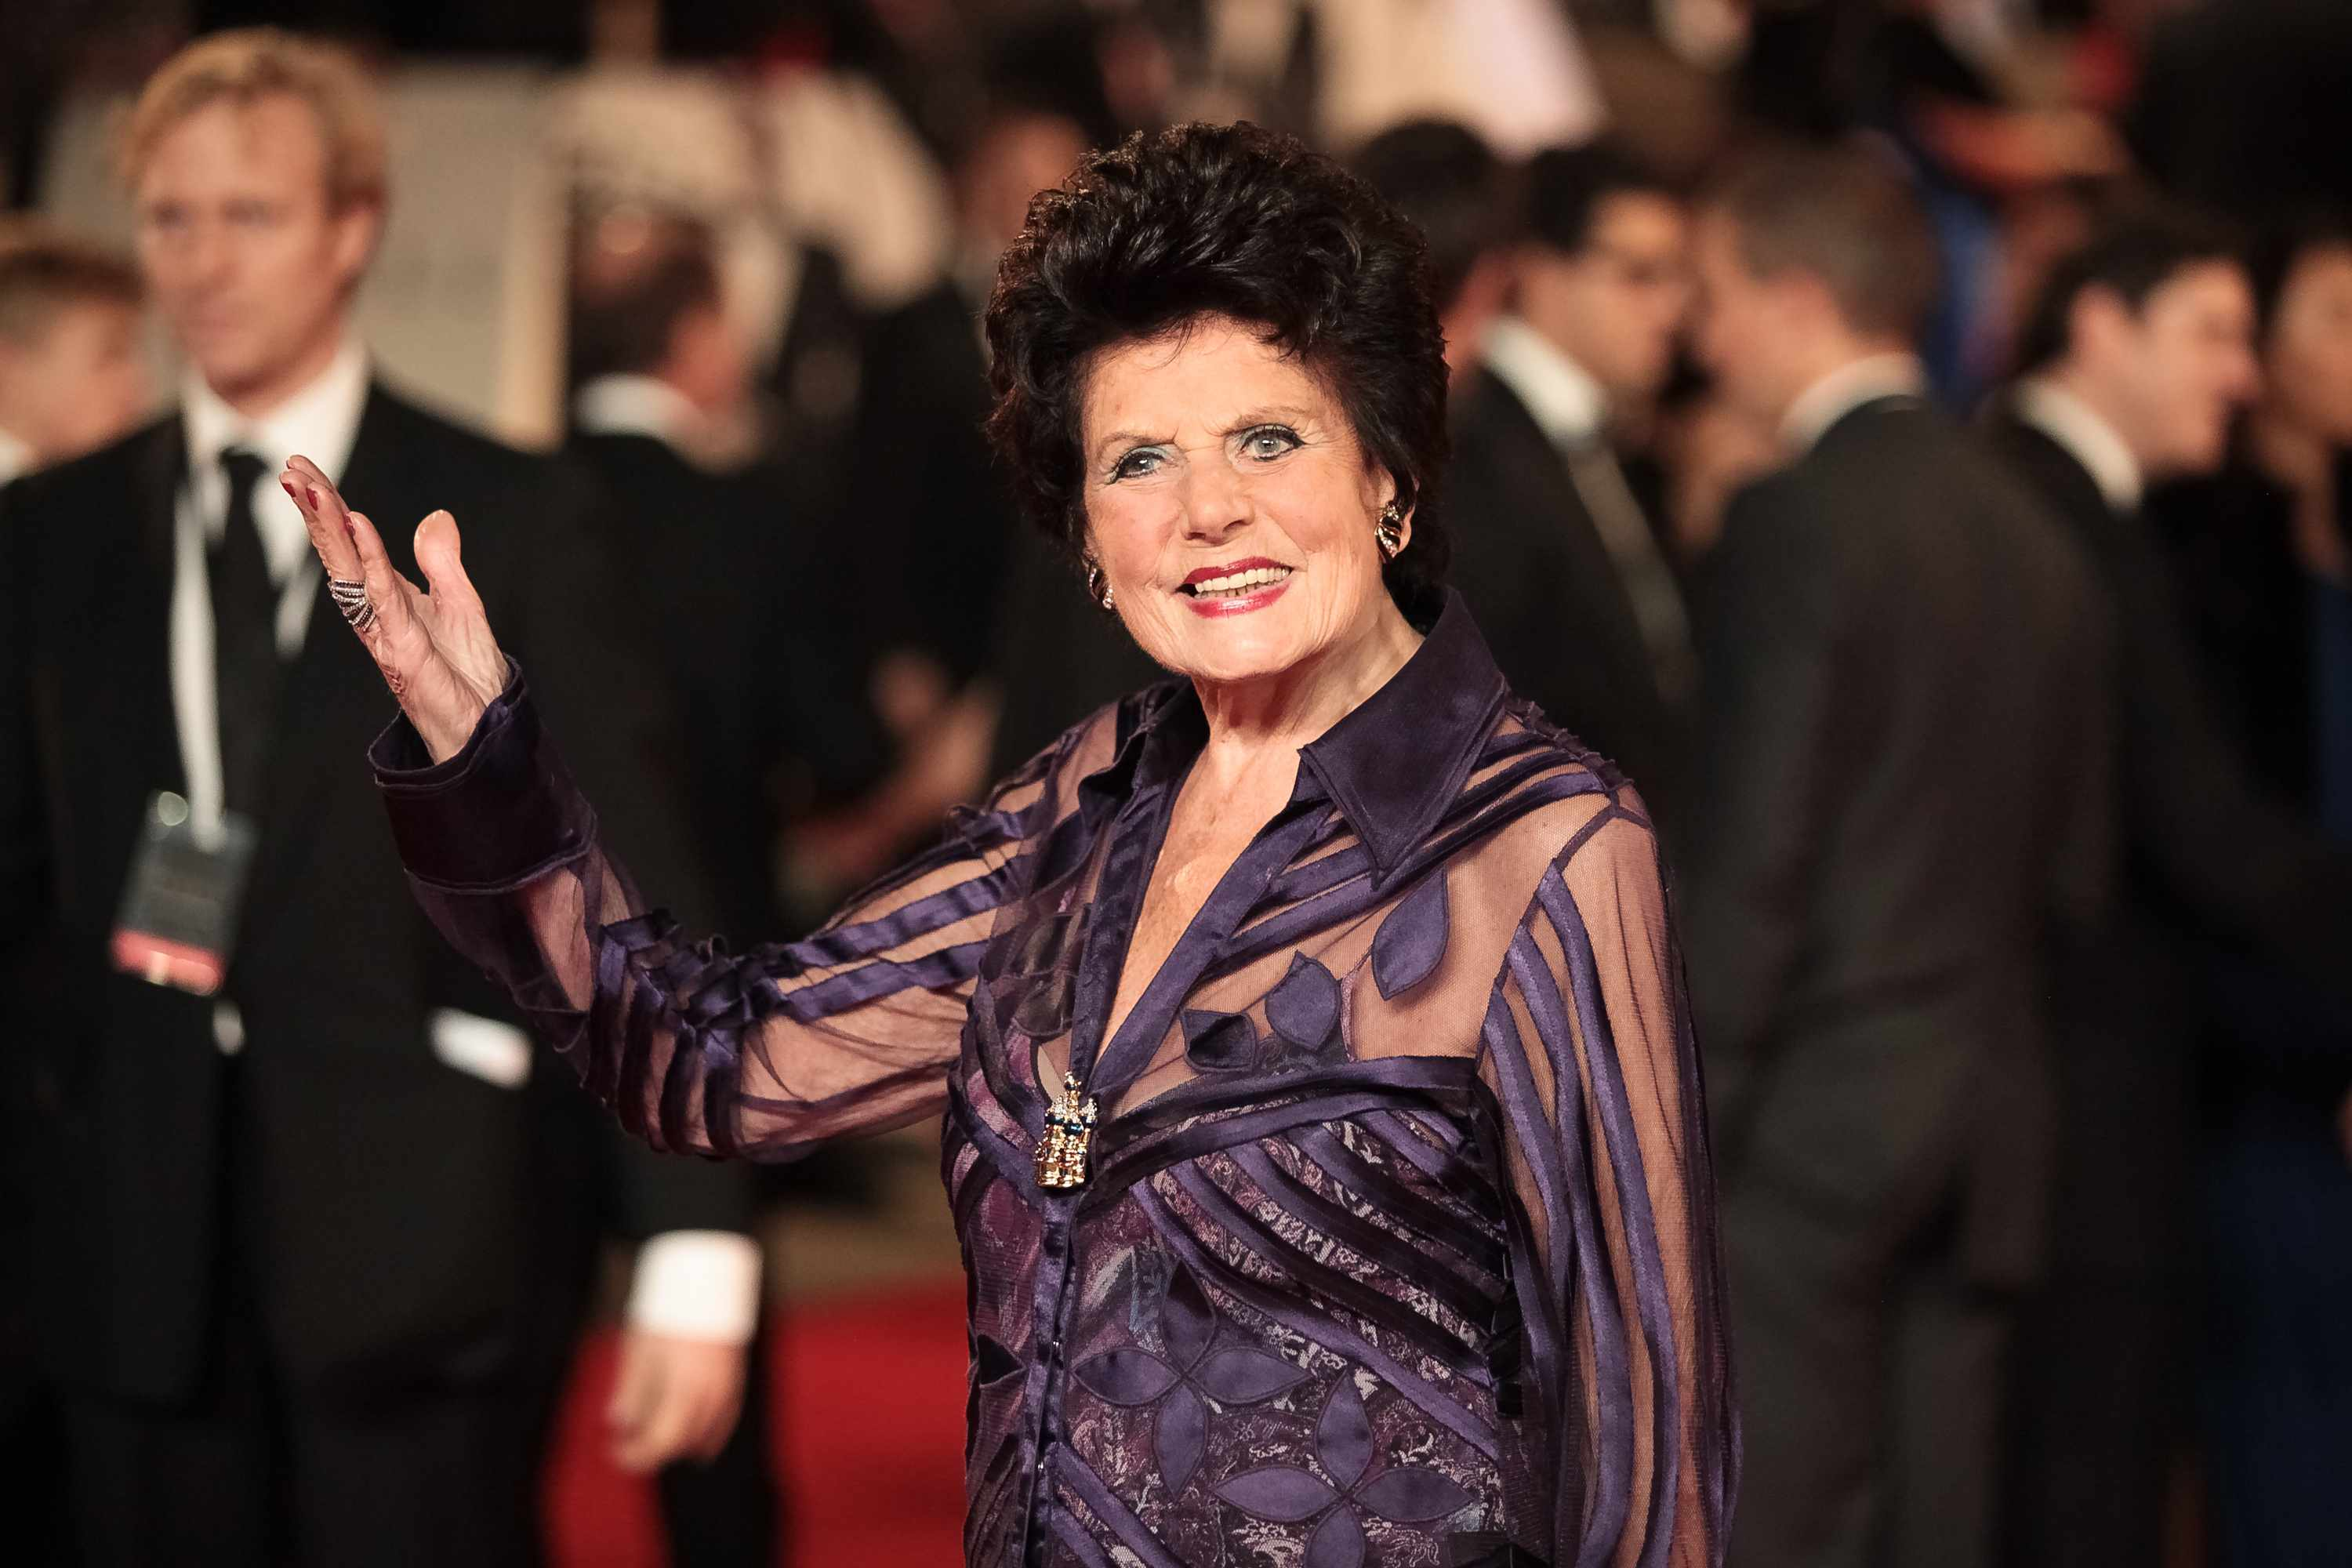 LONDON, UNITED KINGDOM - OCTOBER 23: Eunice Gayson attends the Royal World Premiere of 'Skyfall' at Royal Albert Hall on October 23, 2012 in London, England. (Photo by Christie Goodwin/WireImage)